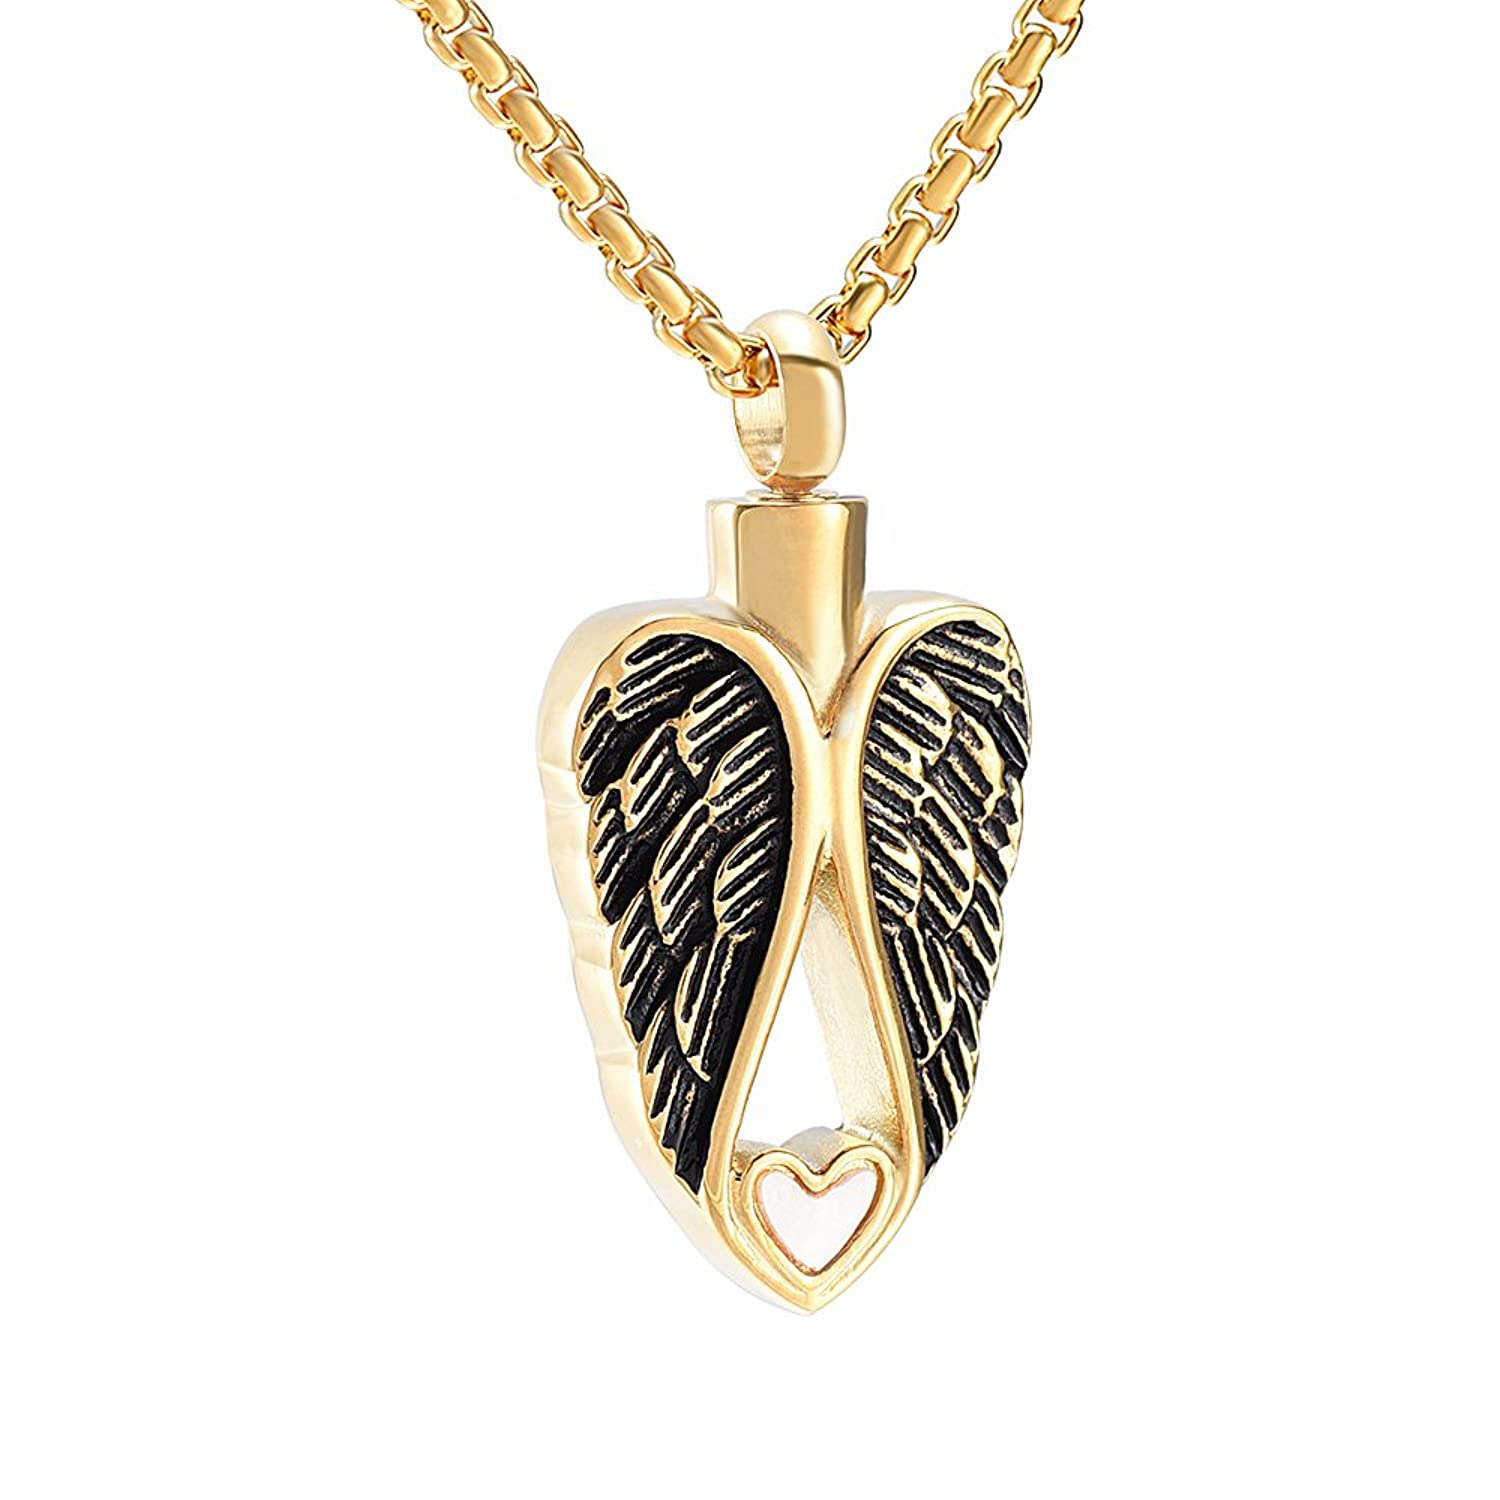 Double Angel Wing With Heart Shell Pet Cremation Jewelry Pendant Urn Necklace For Ashes +Fill Kits